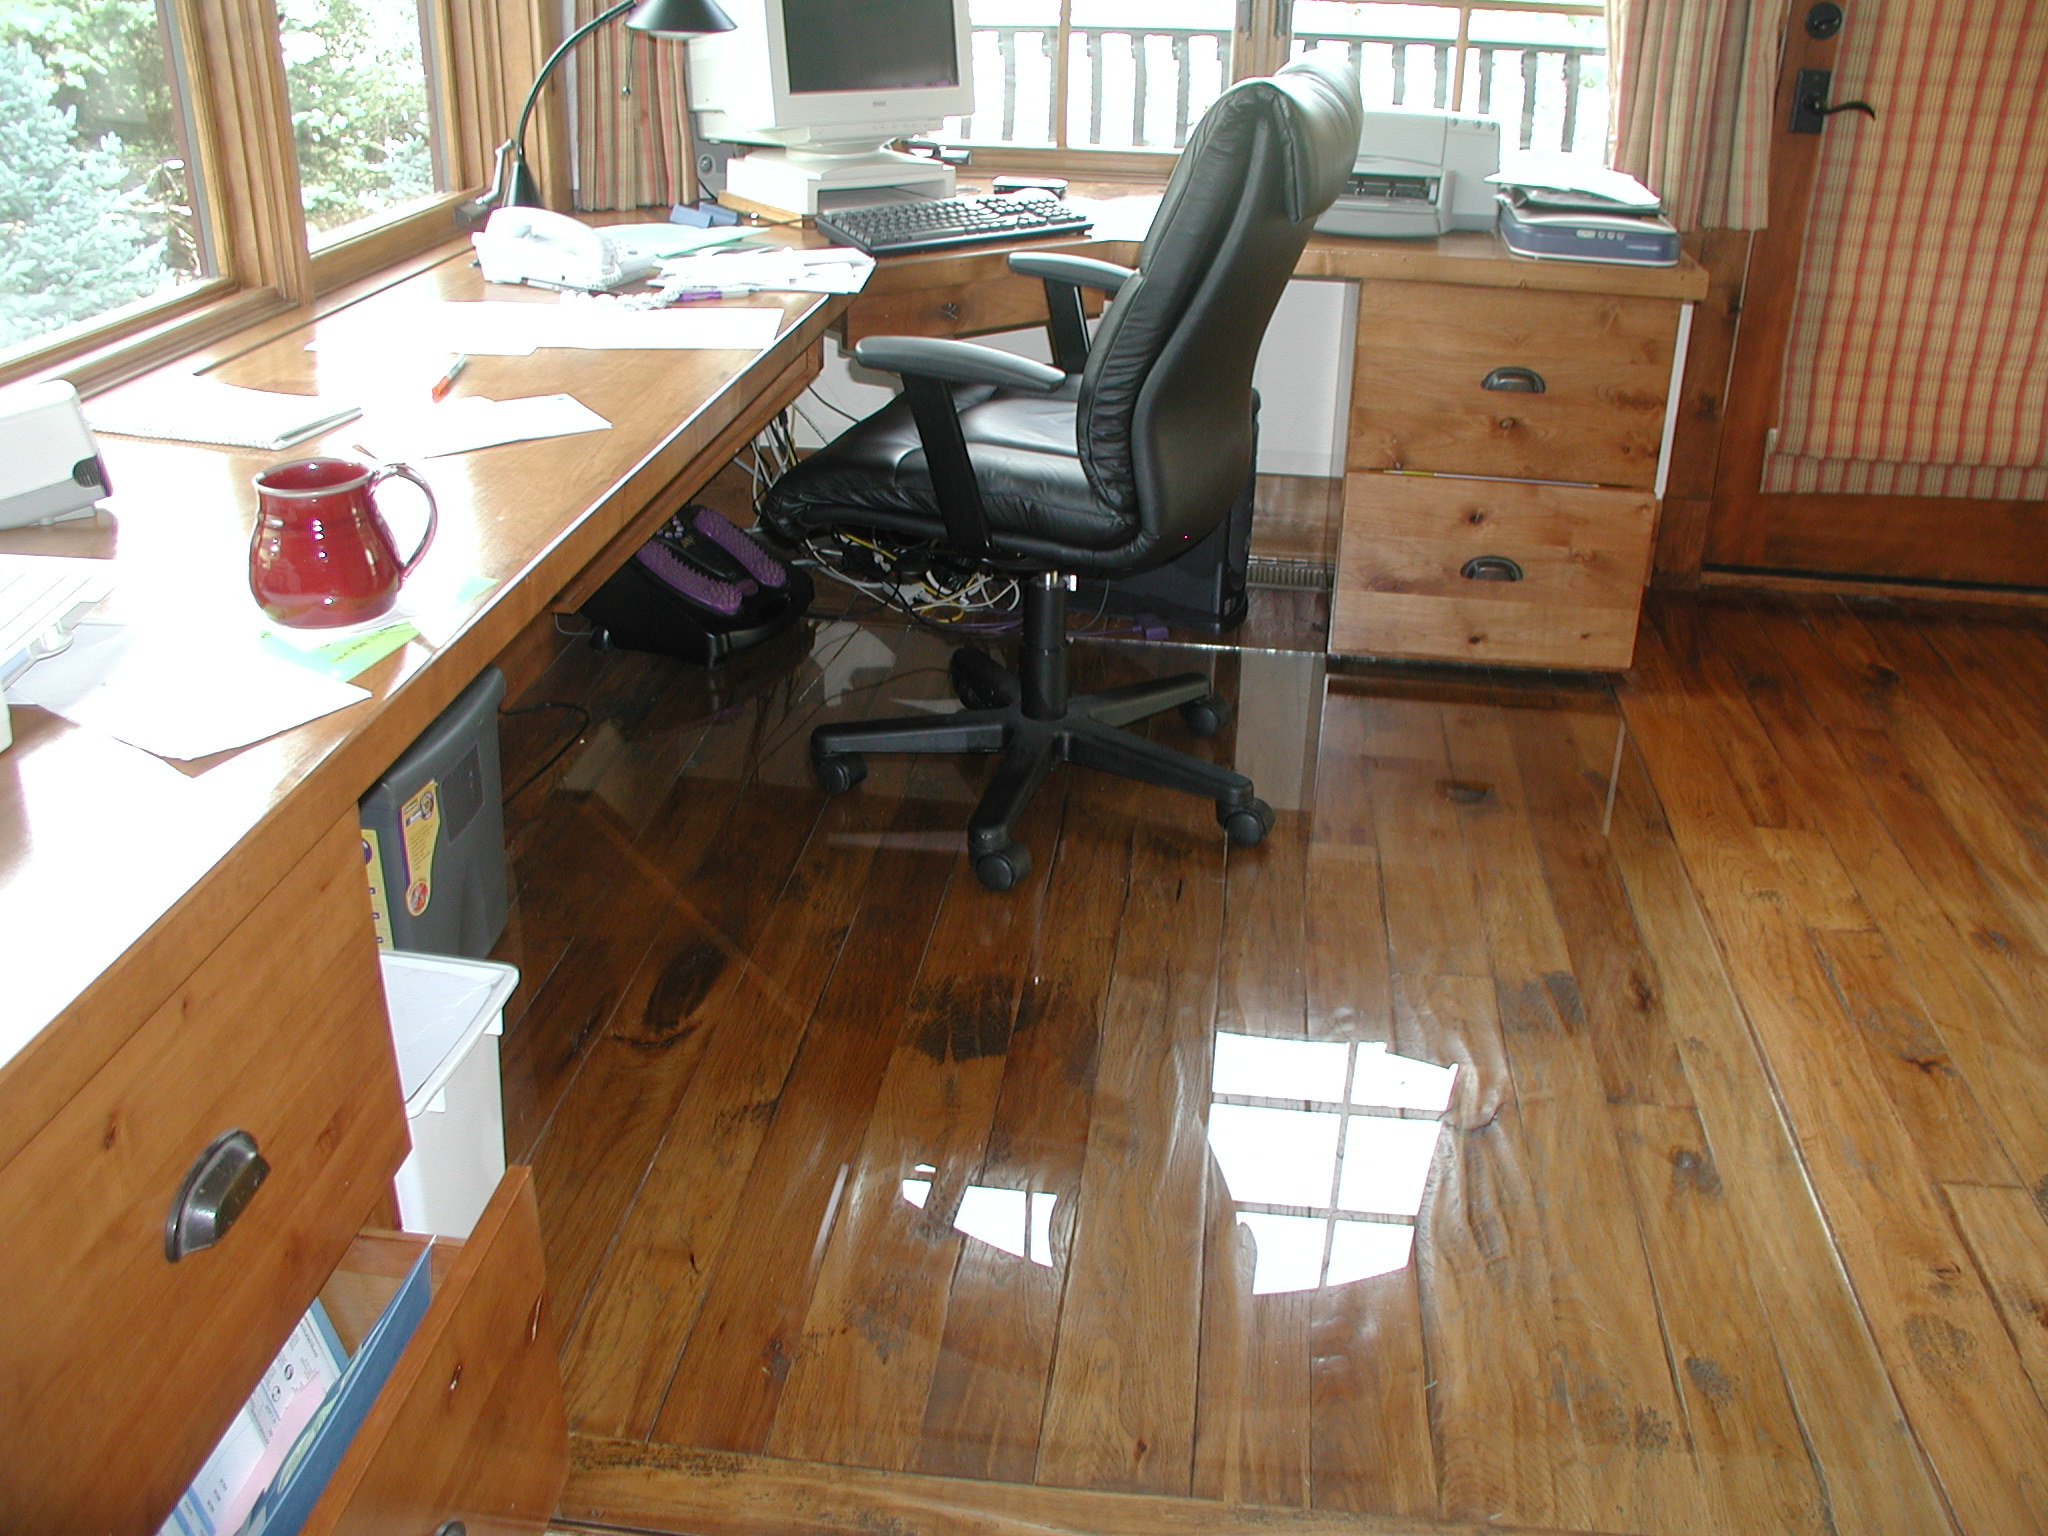 Transpa Floor Mats For Wooden Floors